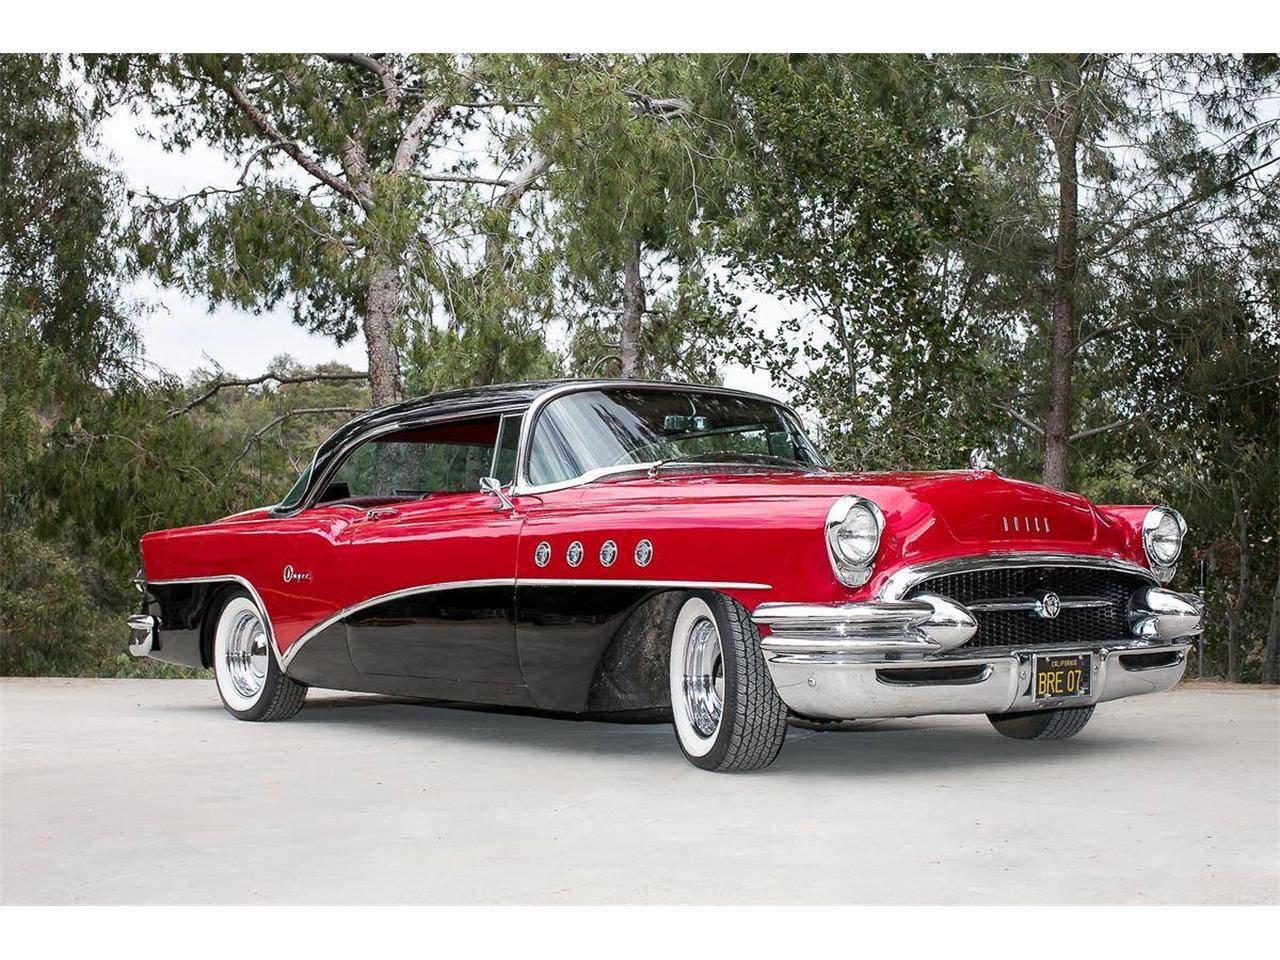 Large Picture of '55 Buick Super - $49,500.00 Offered by a Private Seller - QU0U